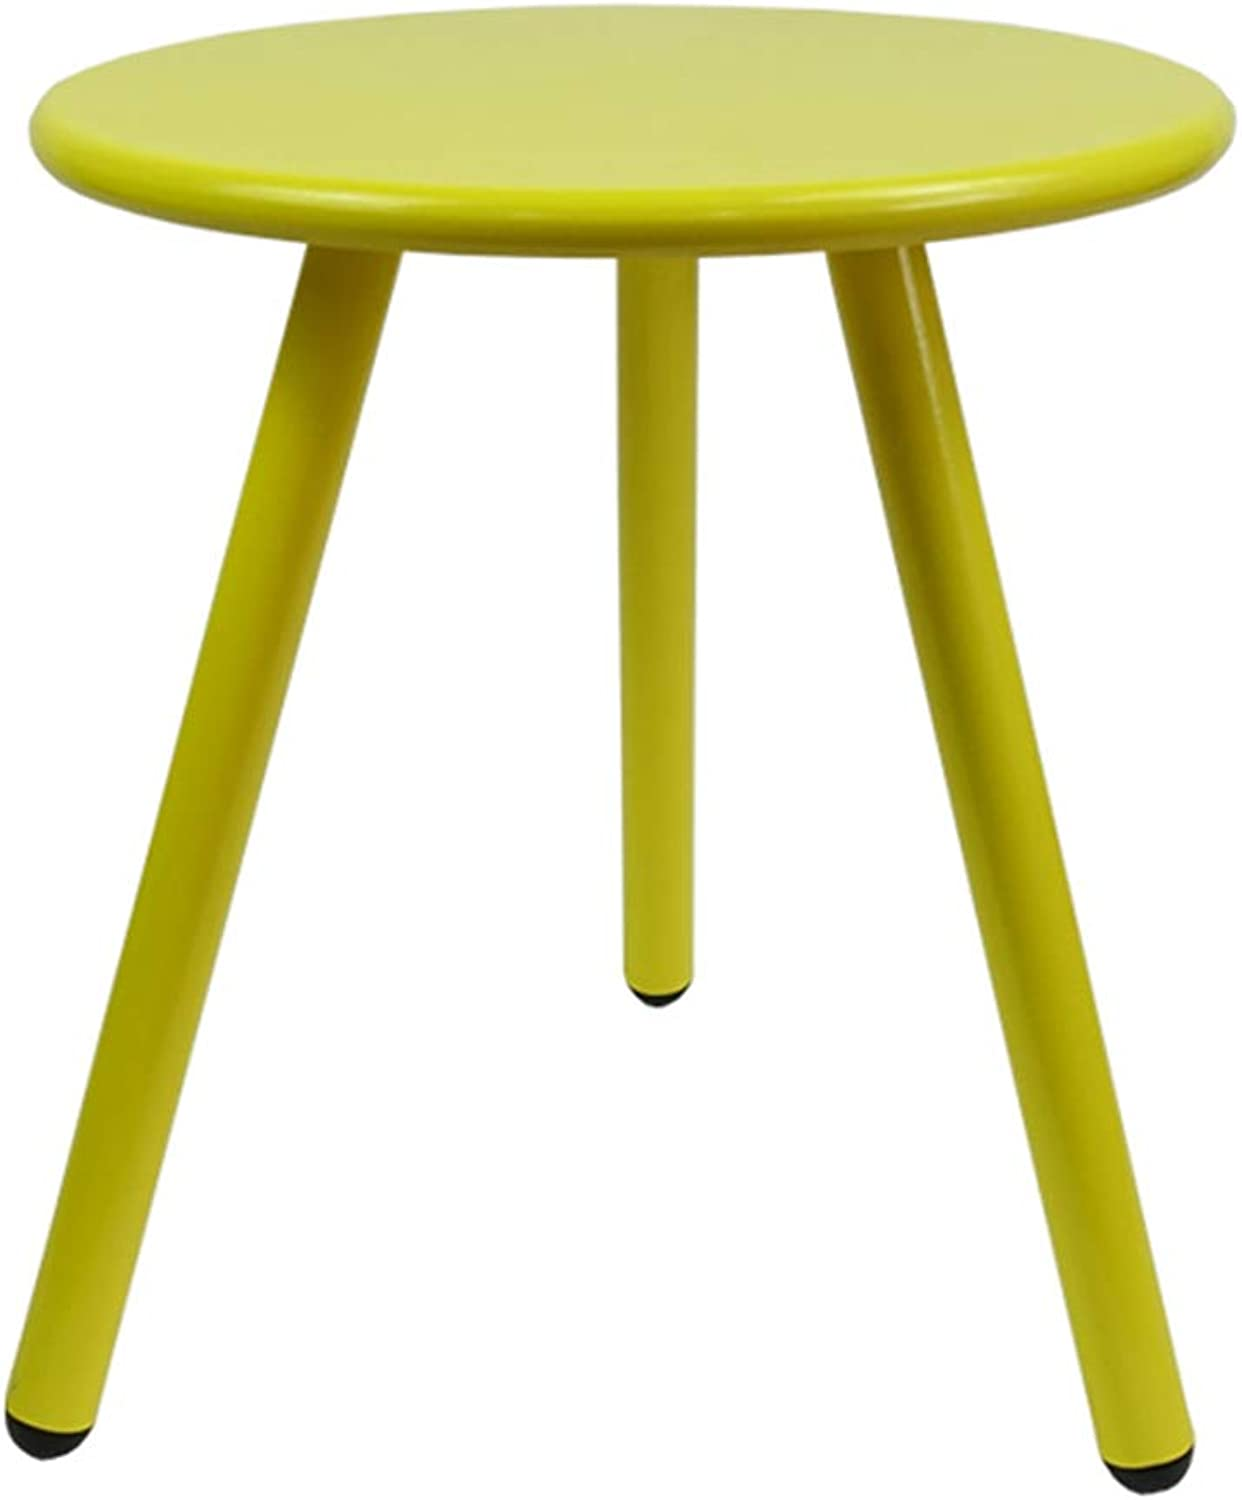 GWDJ Iron Side Table, Round Coffee Table Sofa Side Stable Round Table Balcony Nested Table Suitable for Living Room Bedroom Balcony, 3 colors Corner Table (color   Yellow-Green, Size   40cm-15inch)